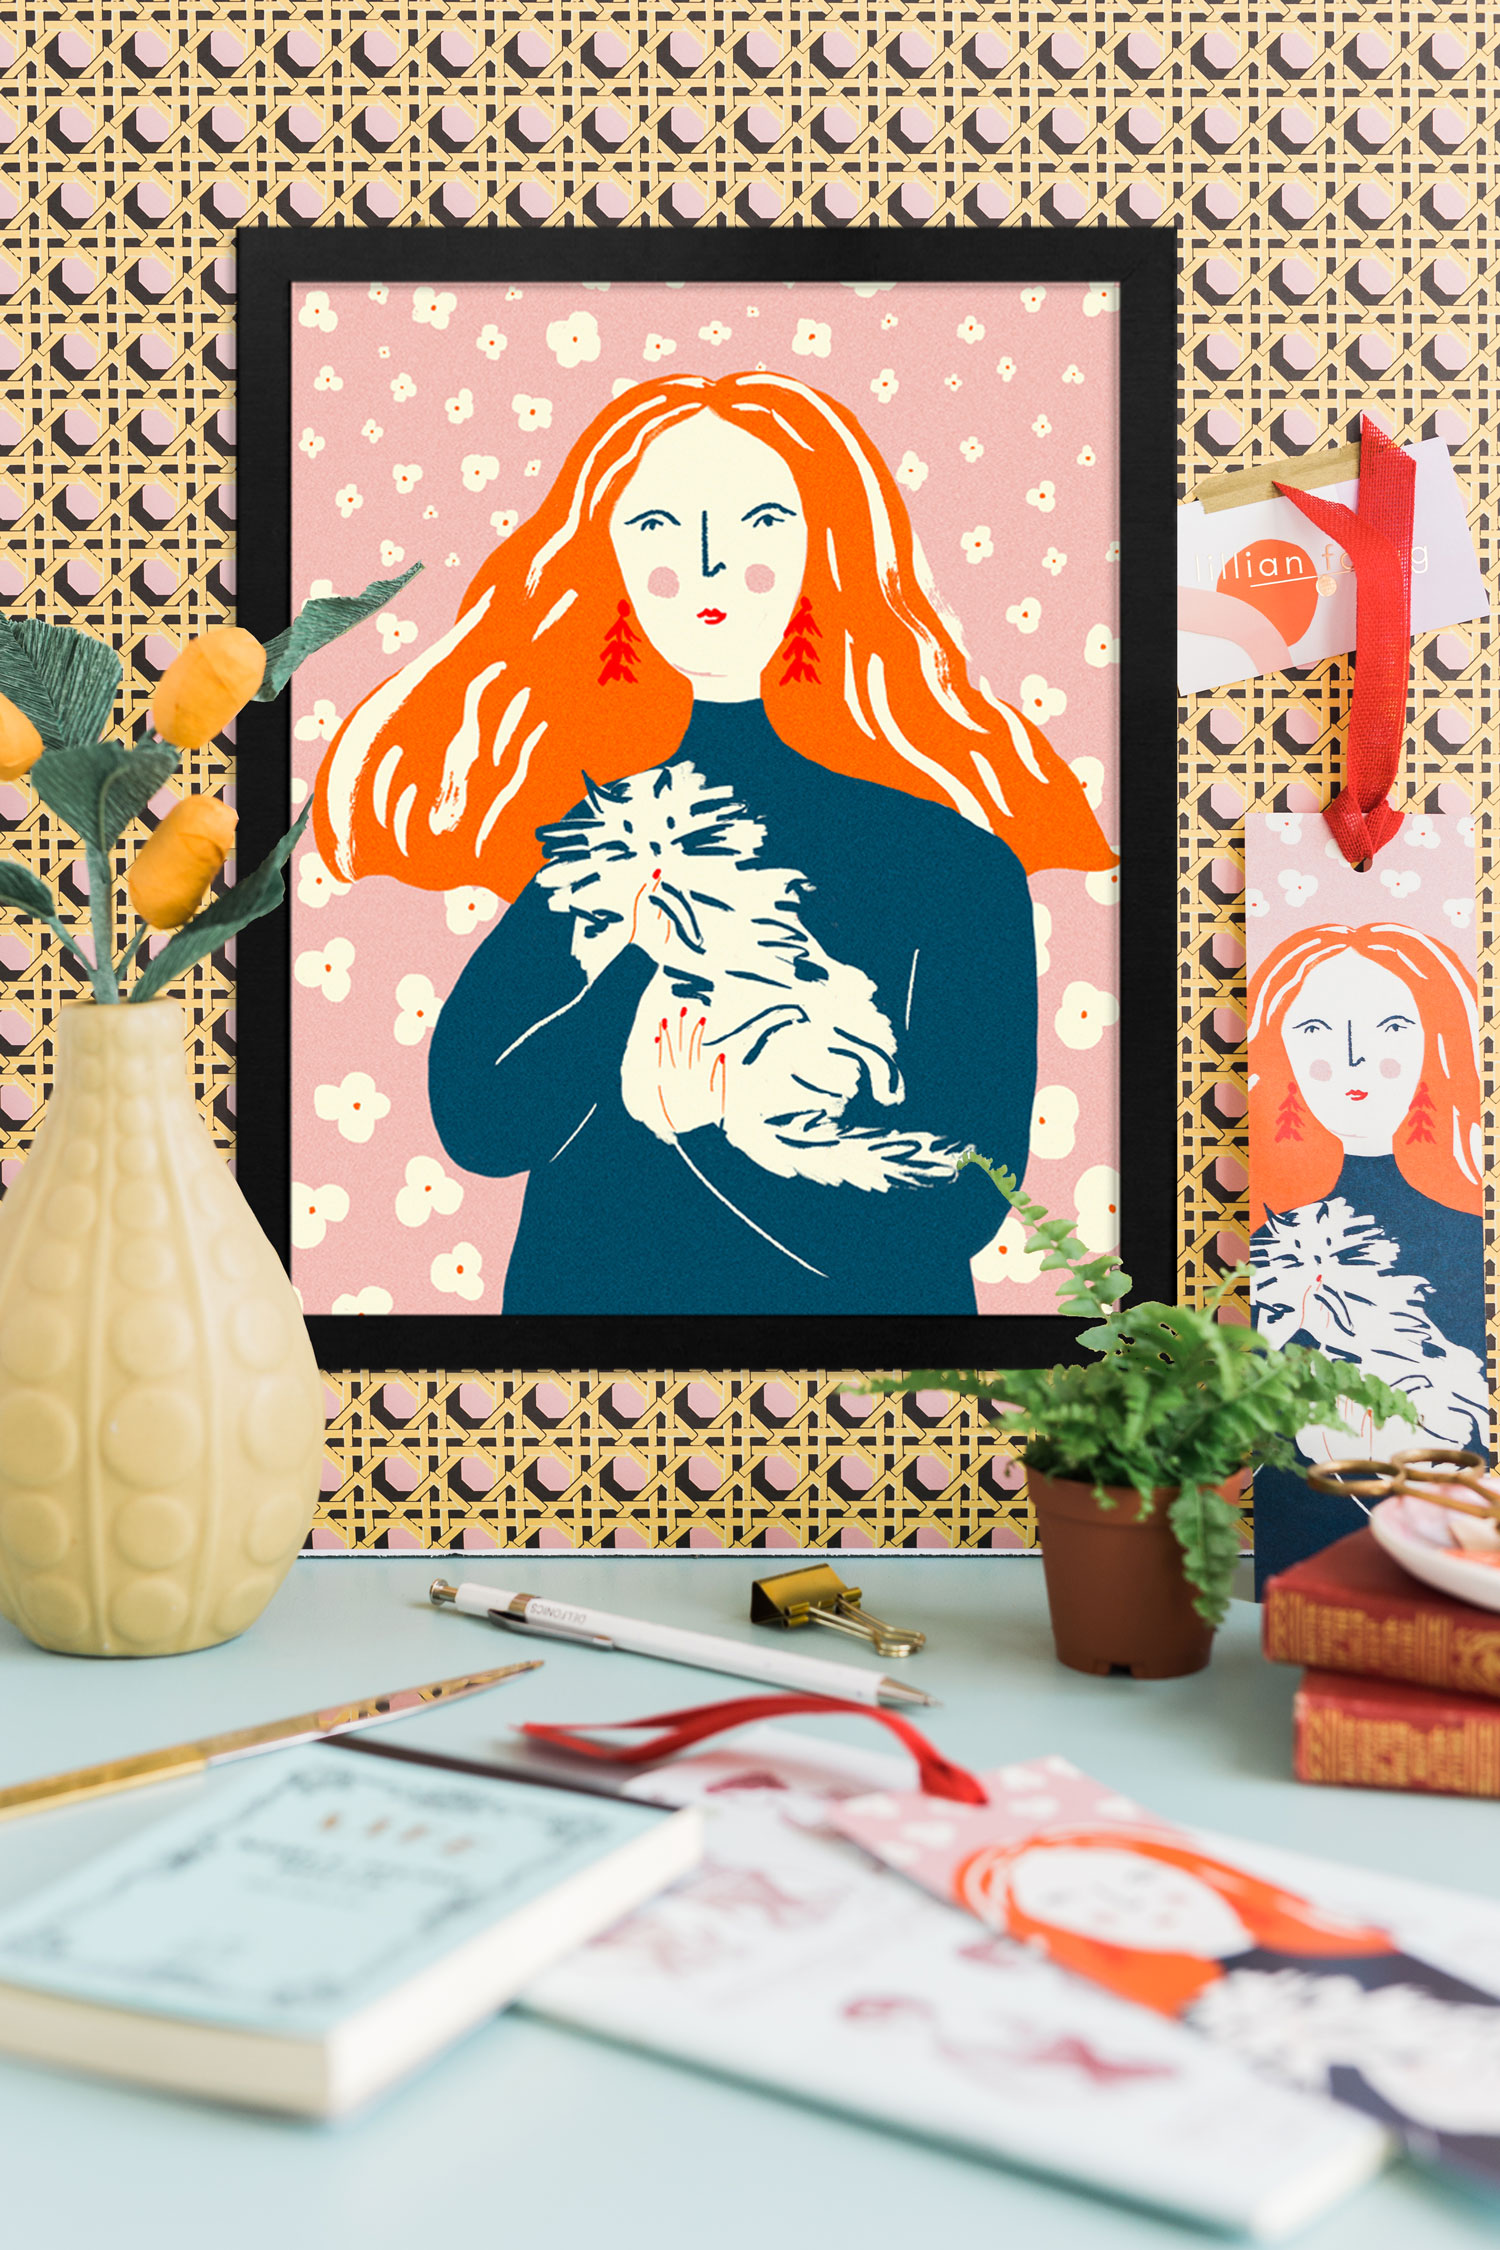 Portrait of Grace Coddington by Josefina Shargorodsky among paper and real plants on a patterned wall